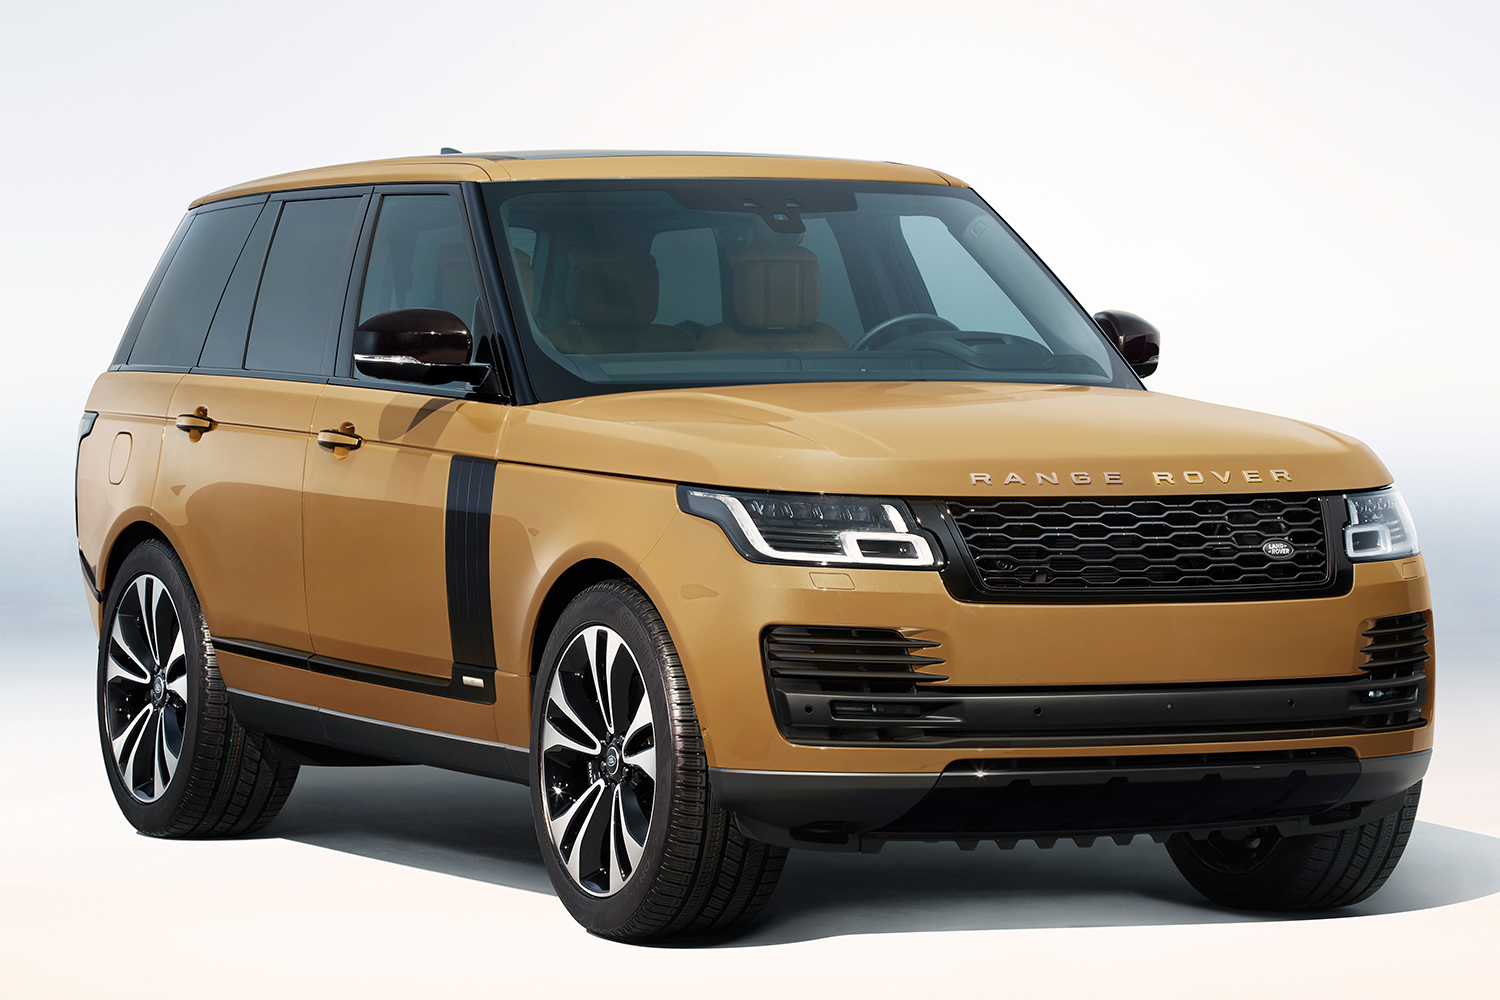 Range Rover Fifty SUV in Bahama Gold